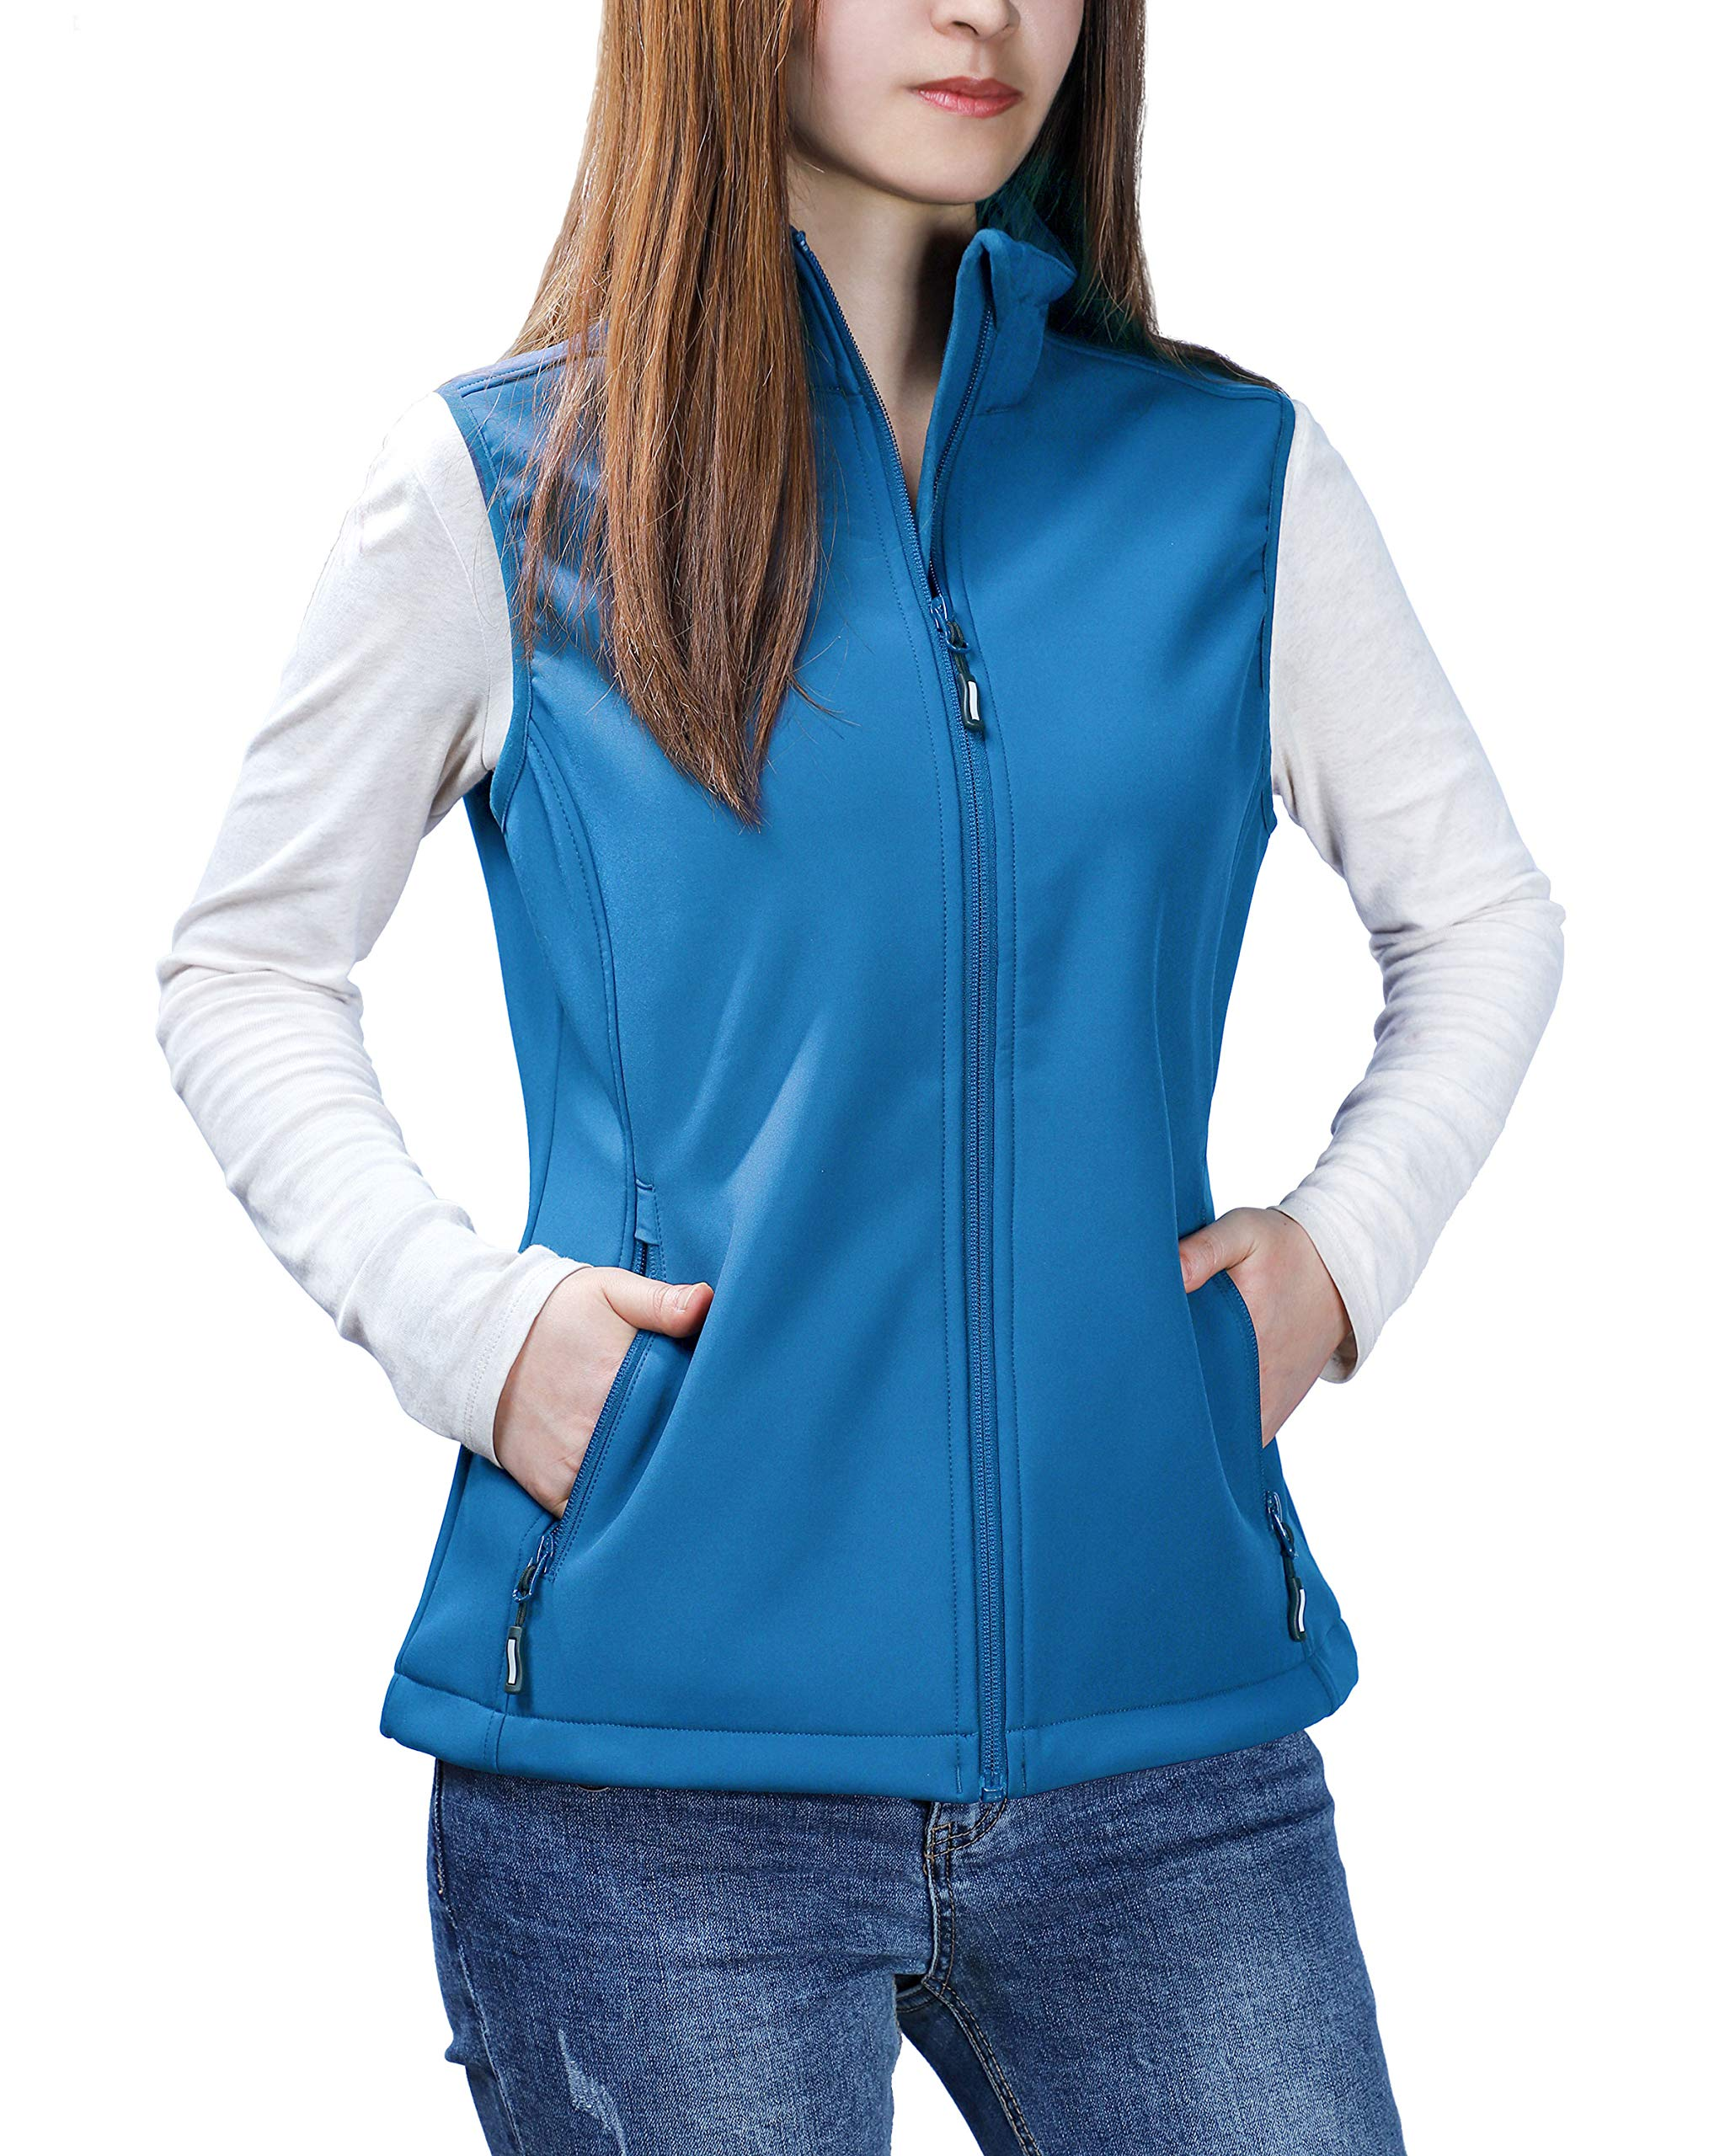 Outdoor Ventures Women's Mia Lightweight Sleeveless Fall Windproof Soft Bonded Fleece Softshell Zip Vest Blue by Outdoor Ventures